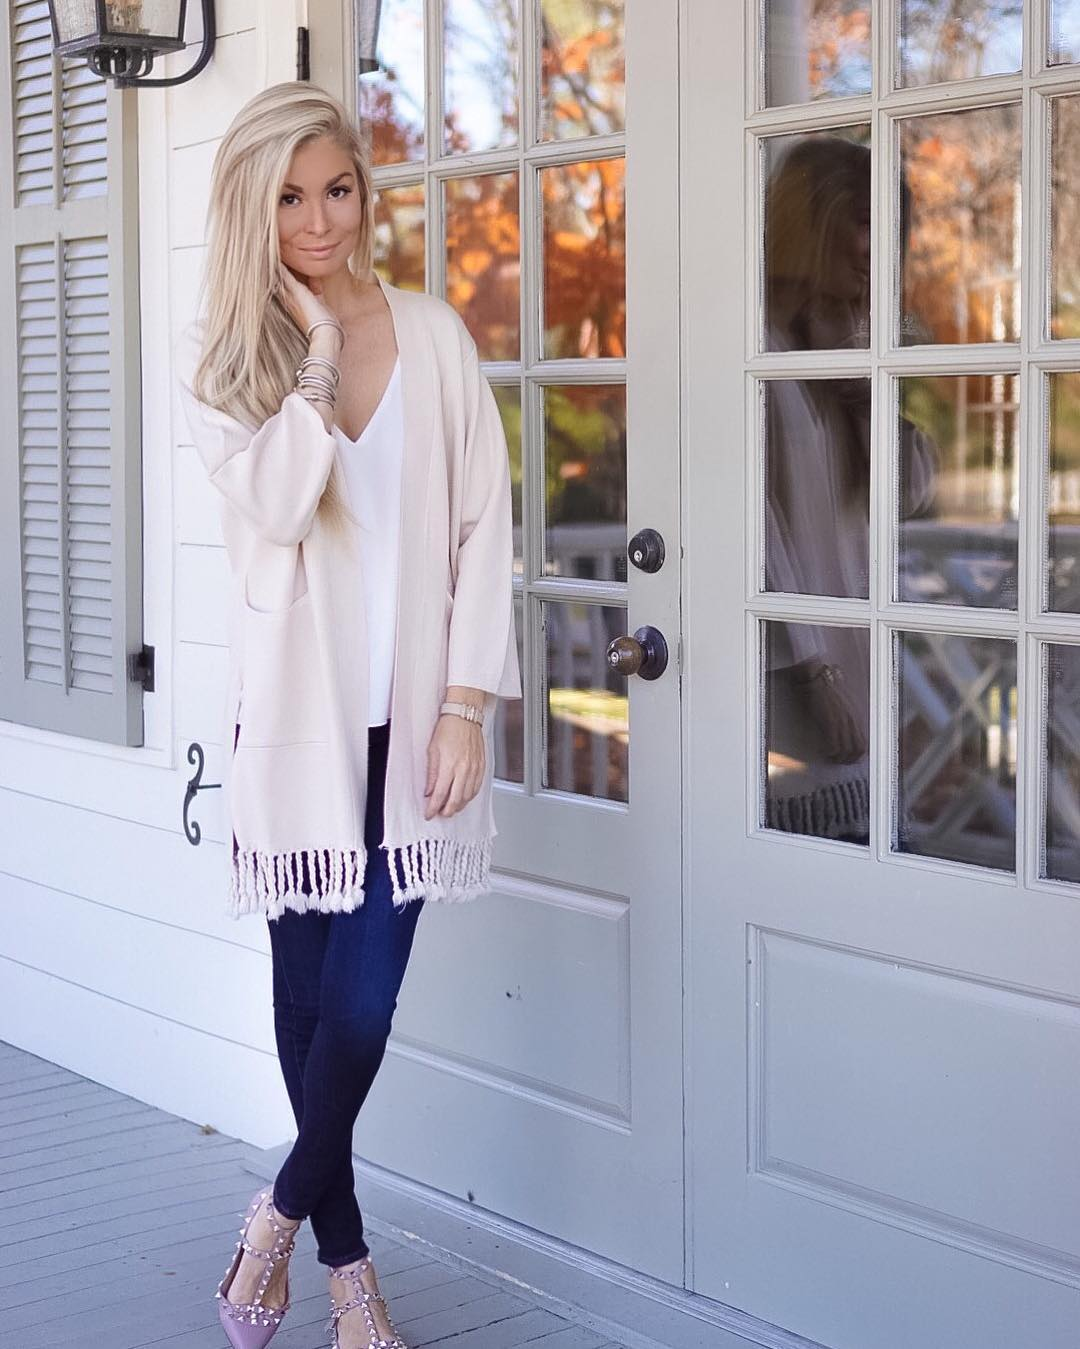 Another day, another sweater...but seriously, I could wear this outfit every single day!! // This tassled cardigan is only $60 and I got SO many compliments wearing it today!! // http://liketk.it/2pDo2 @liketoknow.it #liketkit #fall #fallfashion #ootd #wiw #liketkunder50 #thanksgiving